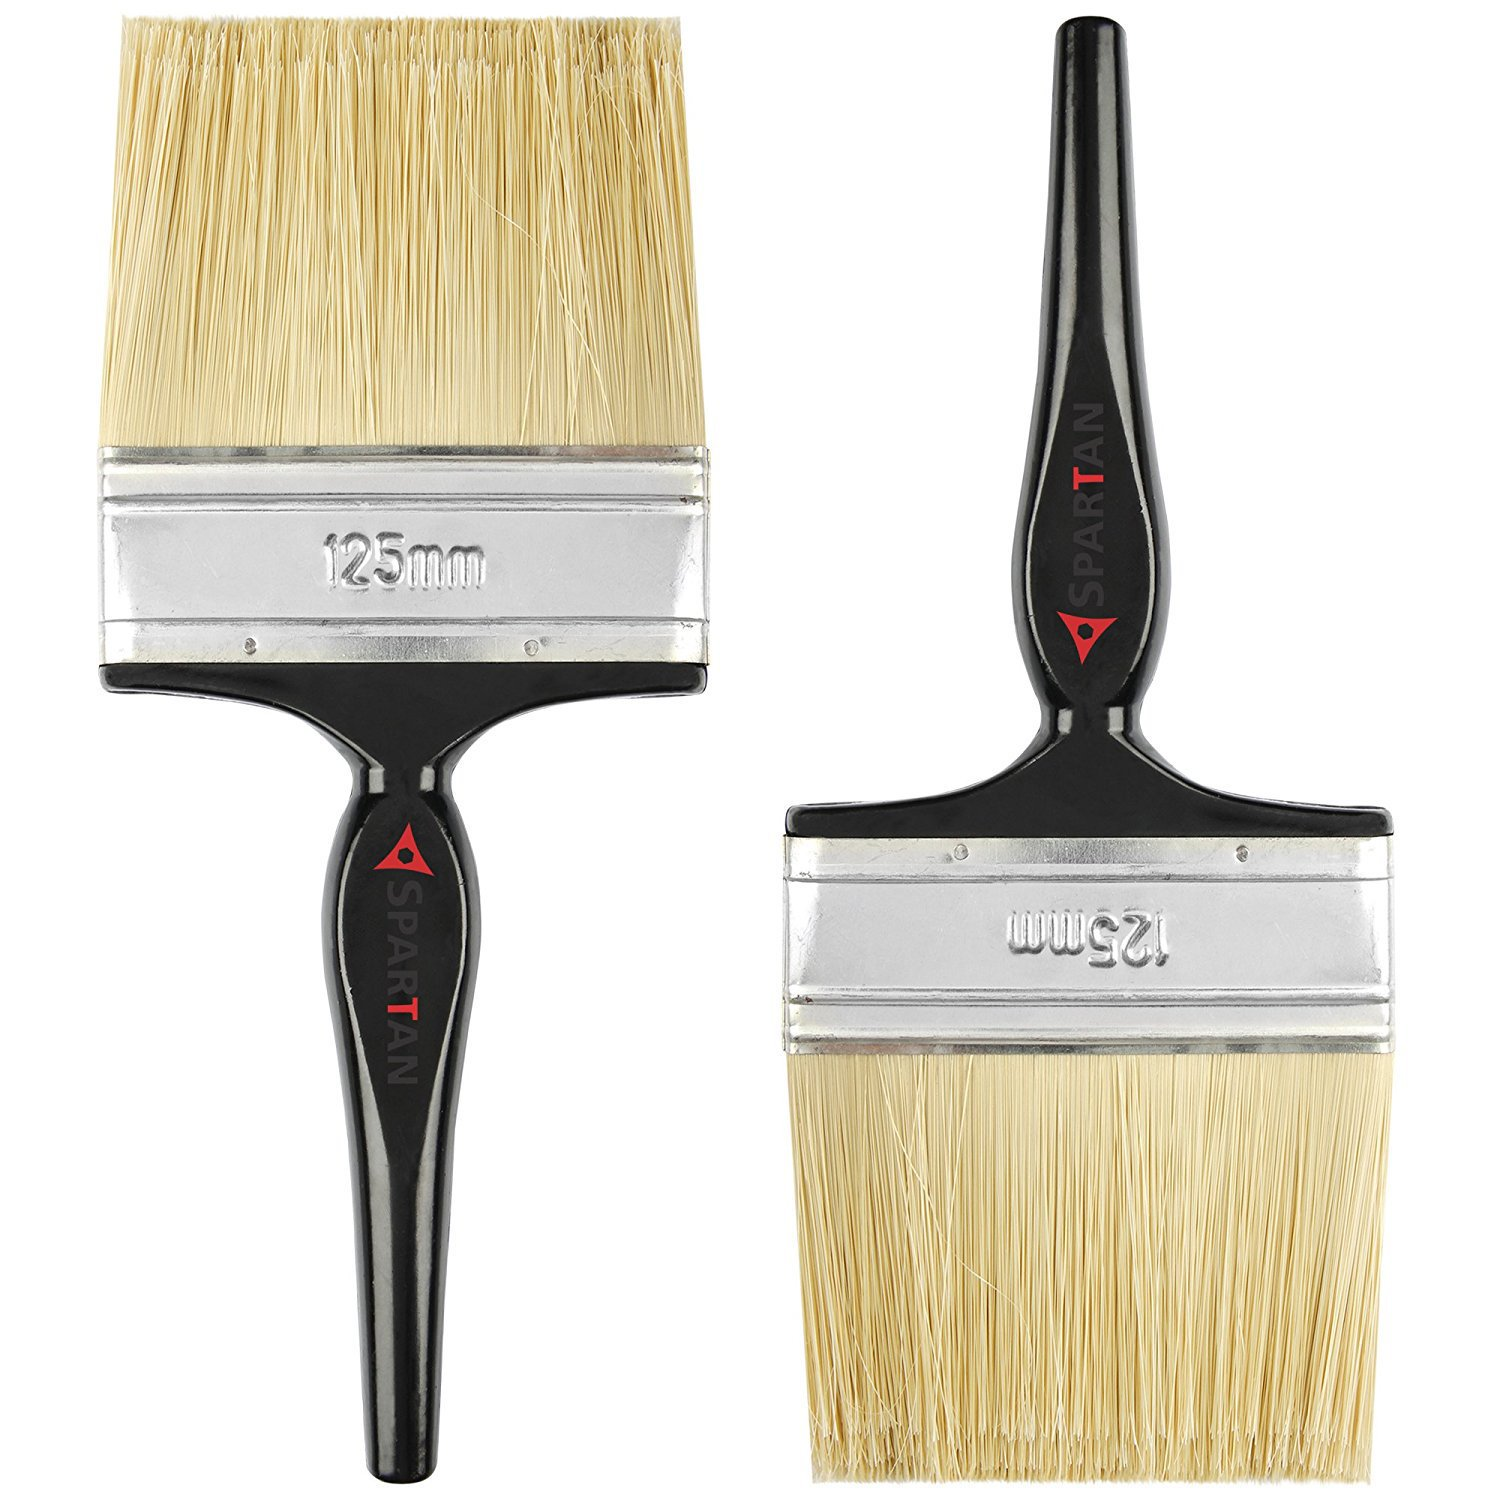 Get Spartan Paint Brush with Multicolour Handle set of 2 ( 125 MM) at Rs 279   Amazon Offer